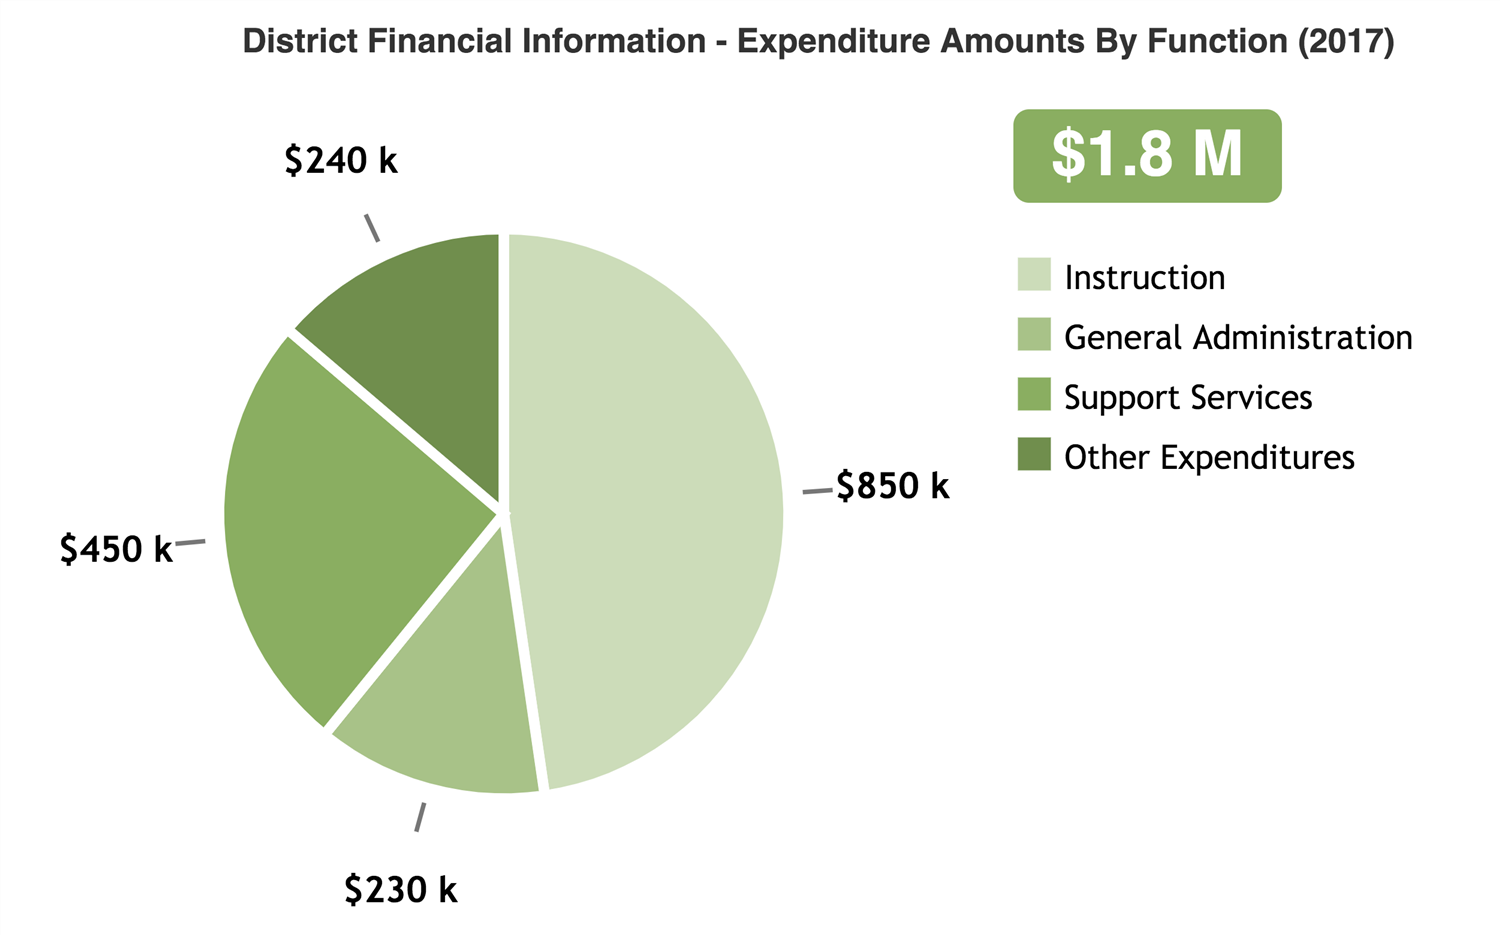 Saunemin CCSD #438 - District Financial Information - Expenditure Amounts by Function